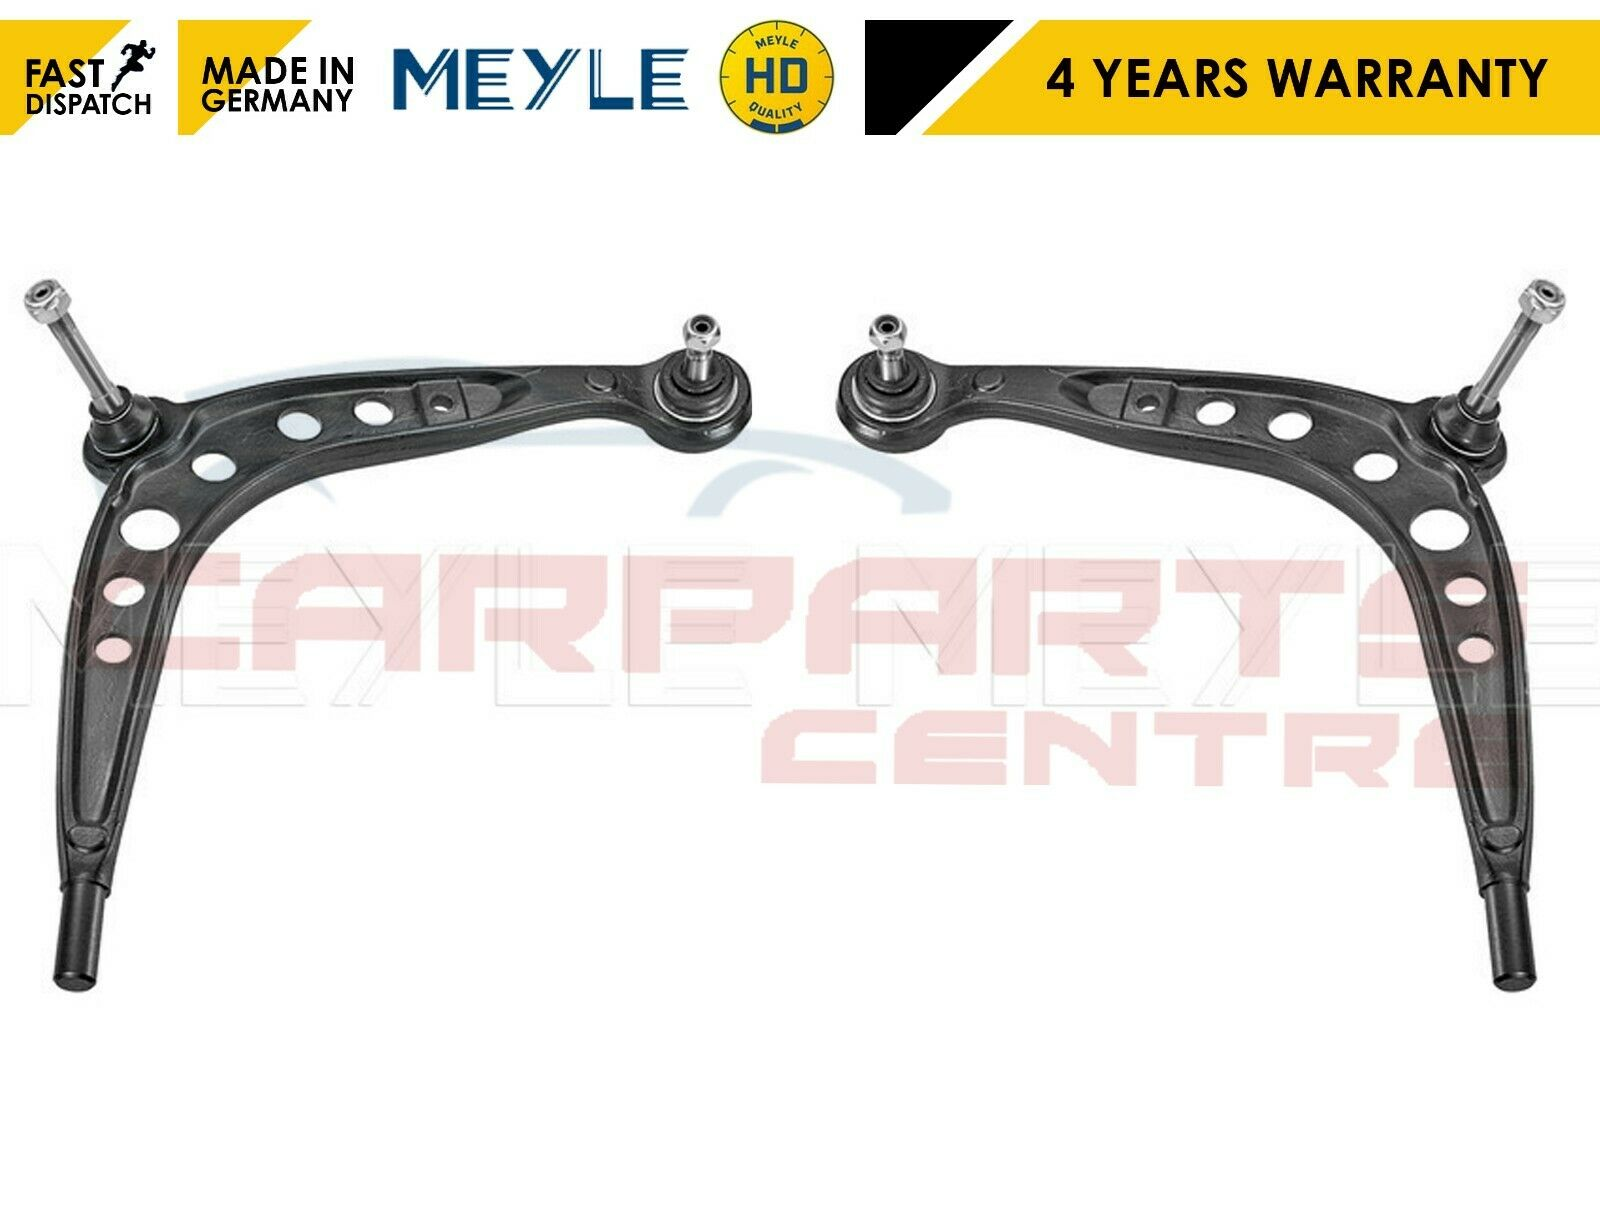 FOR VAUXHALL CORSA D FRONT LOWER WISHBONE ARMS TRACK ROD ENDS MEYLE HD LINKS 06